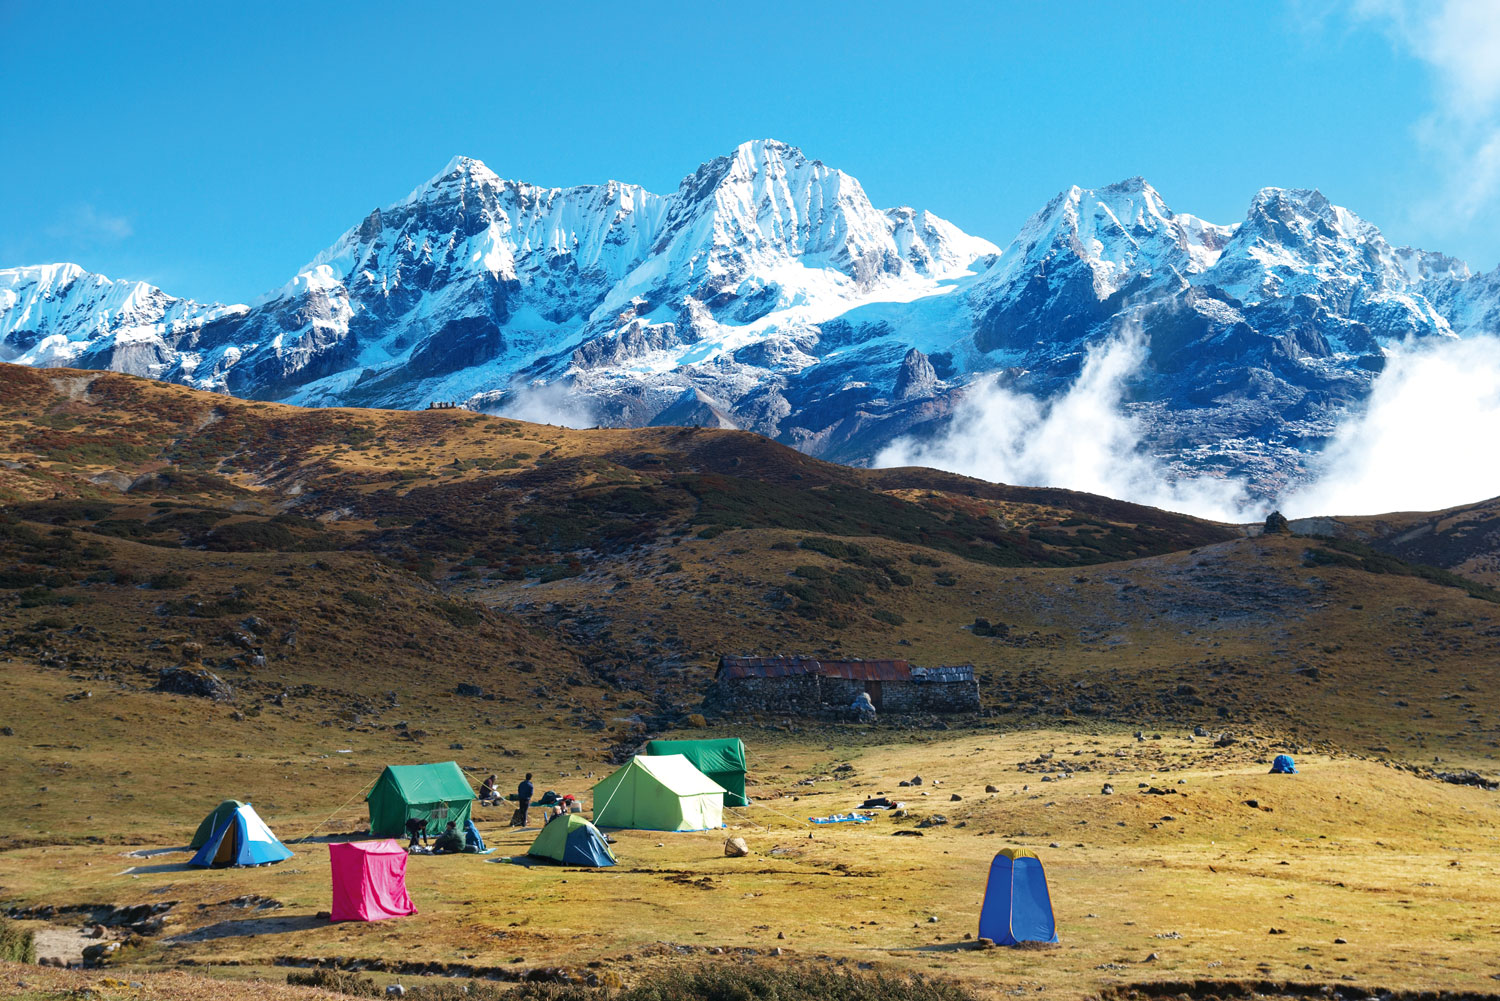 A Paradise For Trekkers and Campers